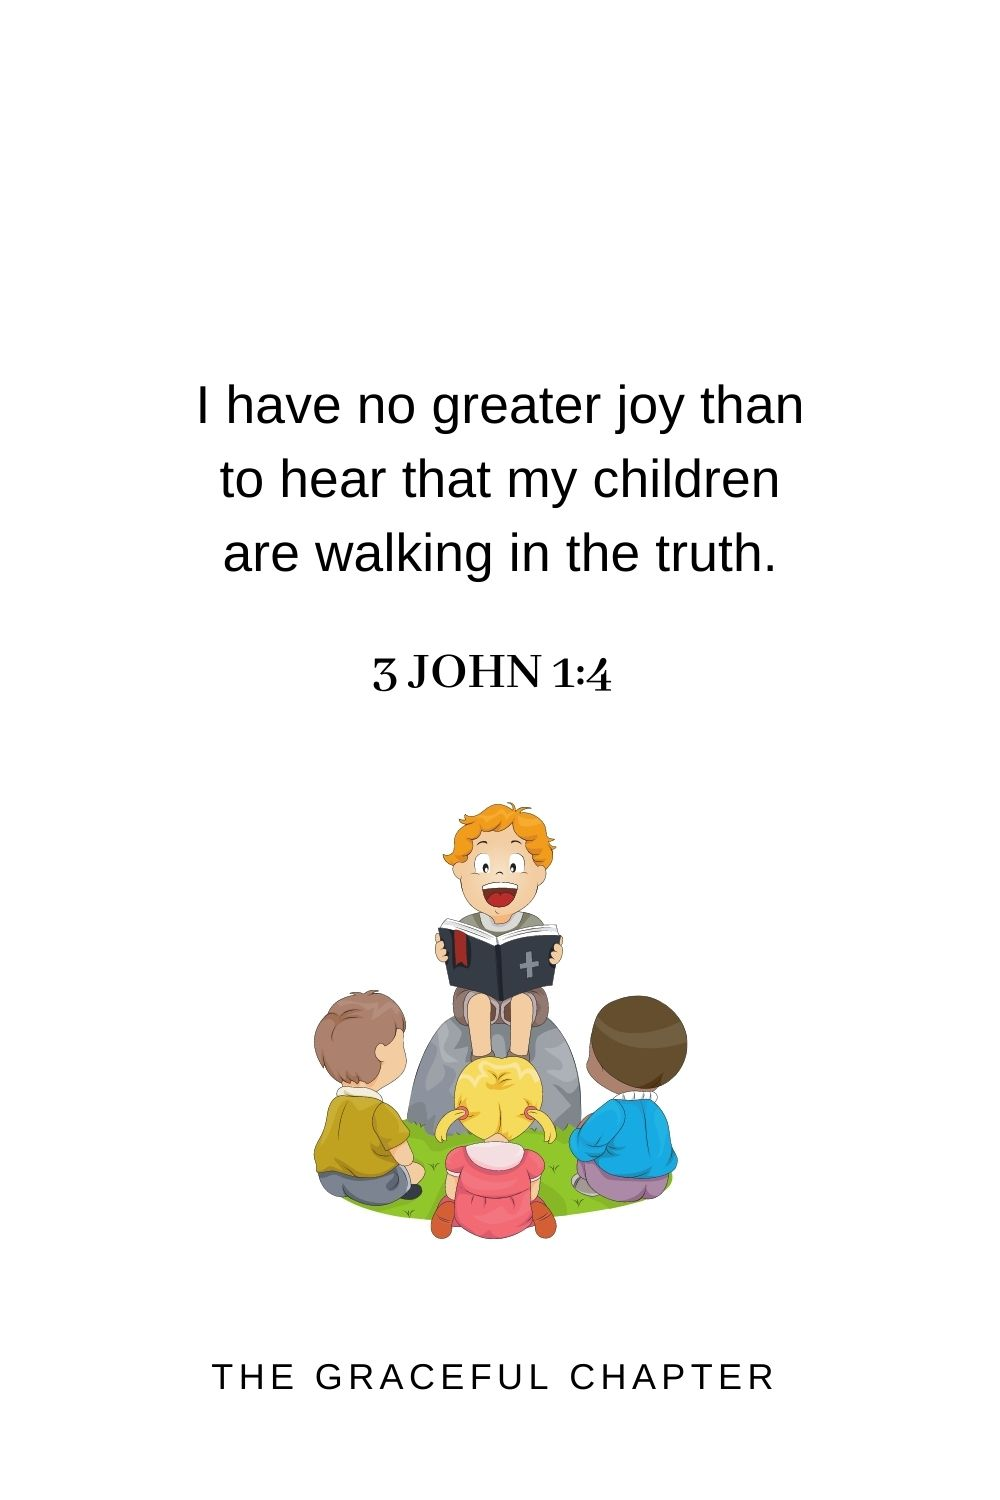 I have no greater joy than to hear that my children are walking in the truth. 3 John 1:4